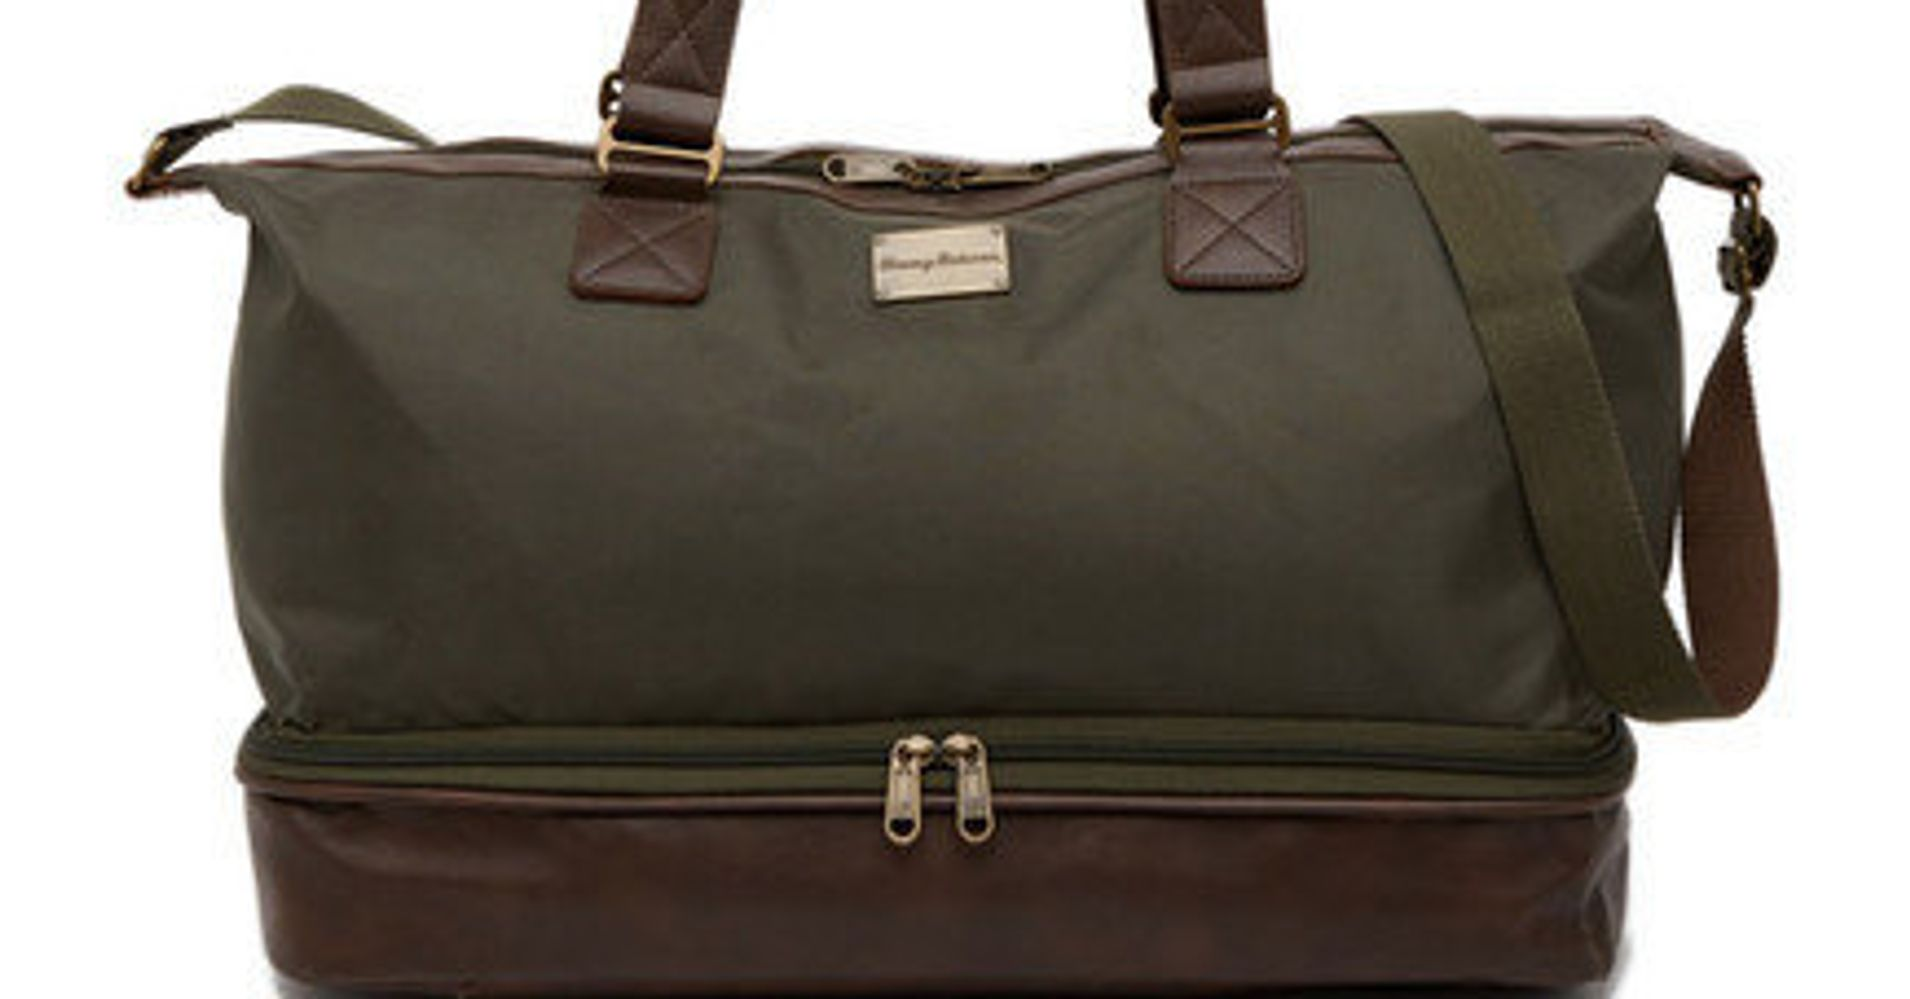 ffeca74fcbf 12 Spacious Weekend Bags With Shoe Compartments